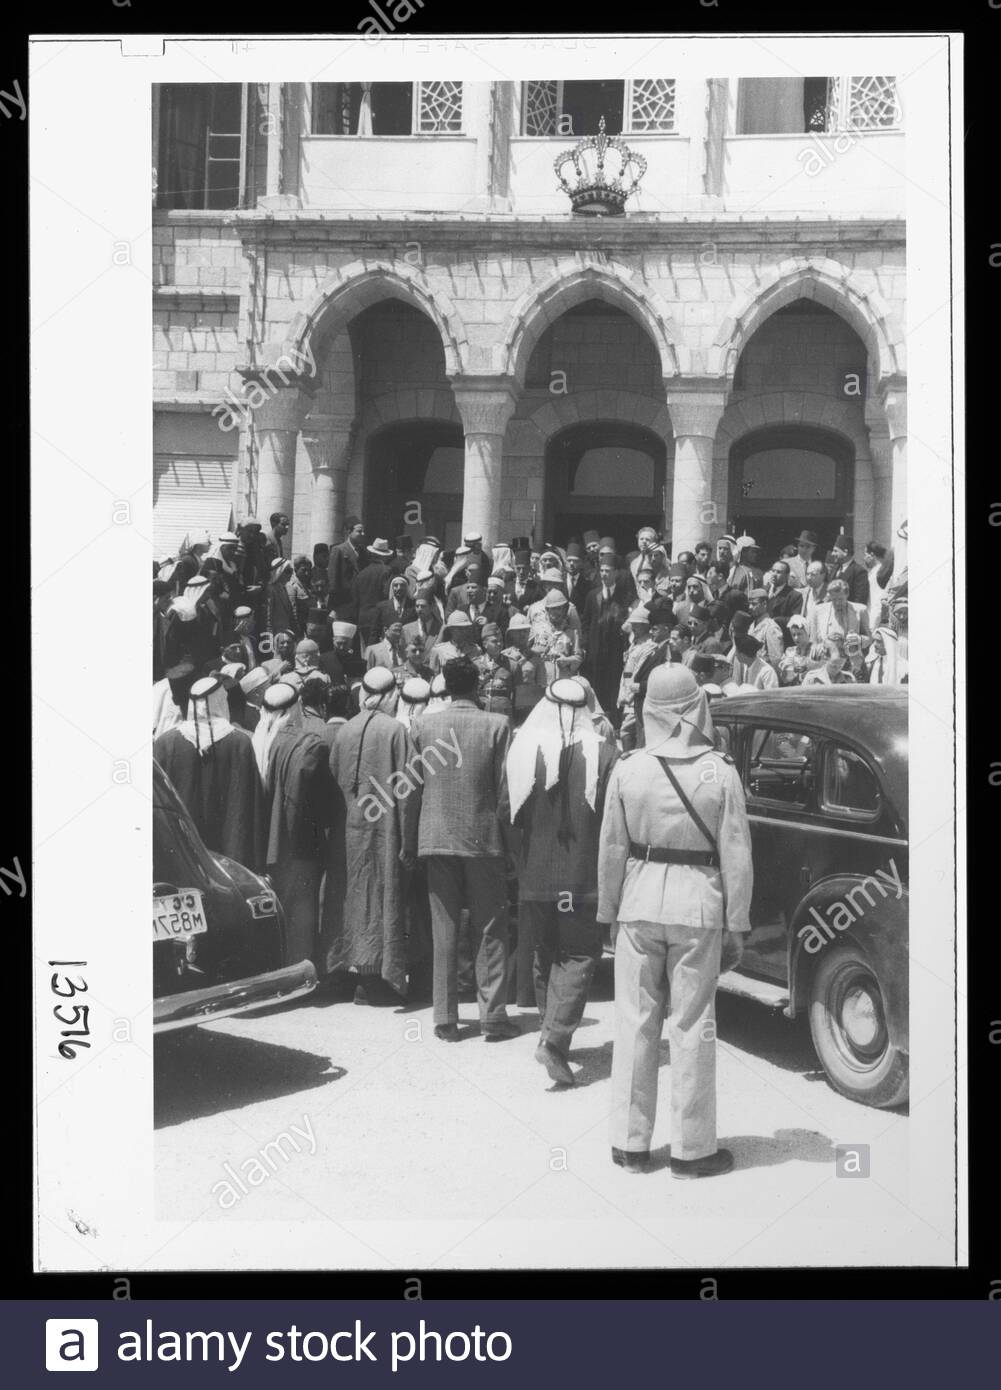 """English: Title: 'Coronation' of King Abdullah in Amman. Crowds at palace awaiting king's return from the mosque Abstract/medium: G. Eric and Edith Matson Photograph Collection  Physical description: 1 transparency :; 1946; Library of Congress Catalog: https://www.loc.gov/pictures/collection/matpc/item/mpc2005010235/PP Original url: https://hdl.loc.gov/loc.pnp/matpc.14991; Matson Collection; "" Stock Photo"